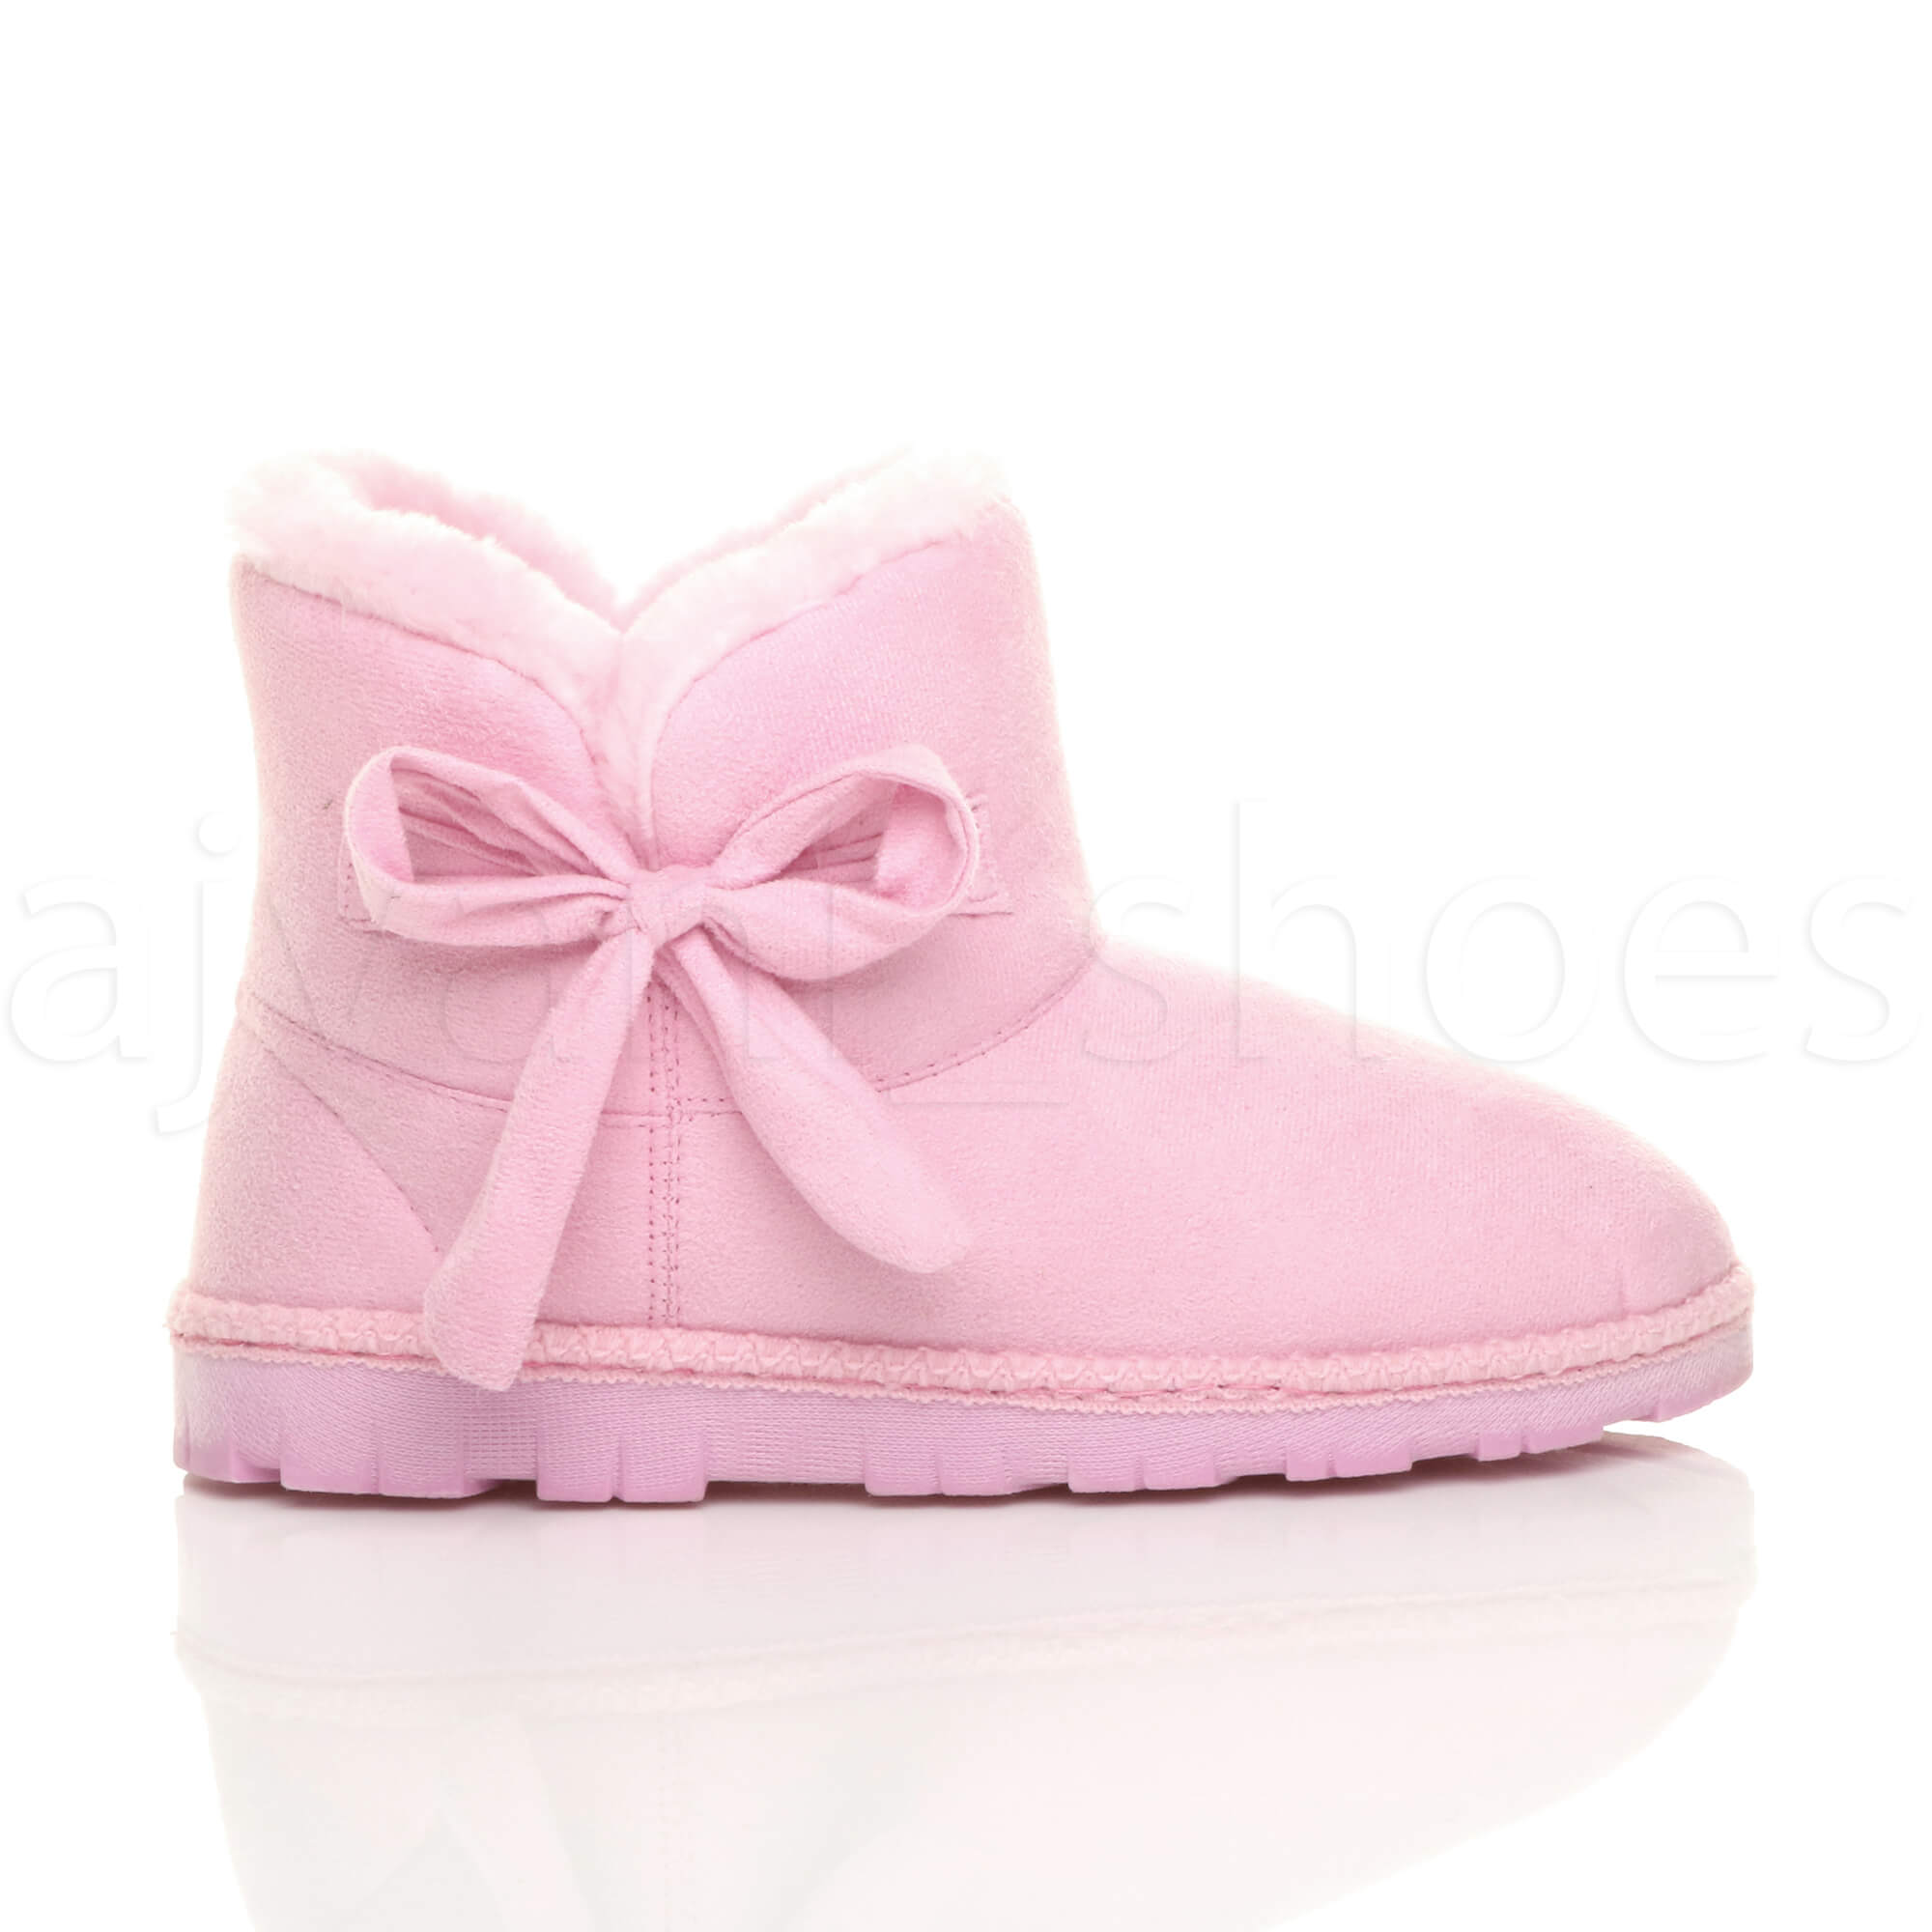 WOMENS-LADIES-FLAT-BOW-PULL-ON-COSY-FUR-LINED-ANKLE-BOOTS-BOOTIES-SLIPPERS-SIZE